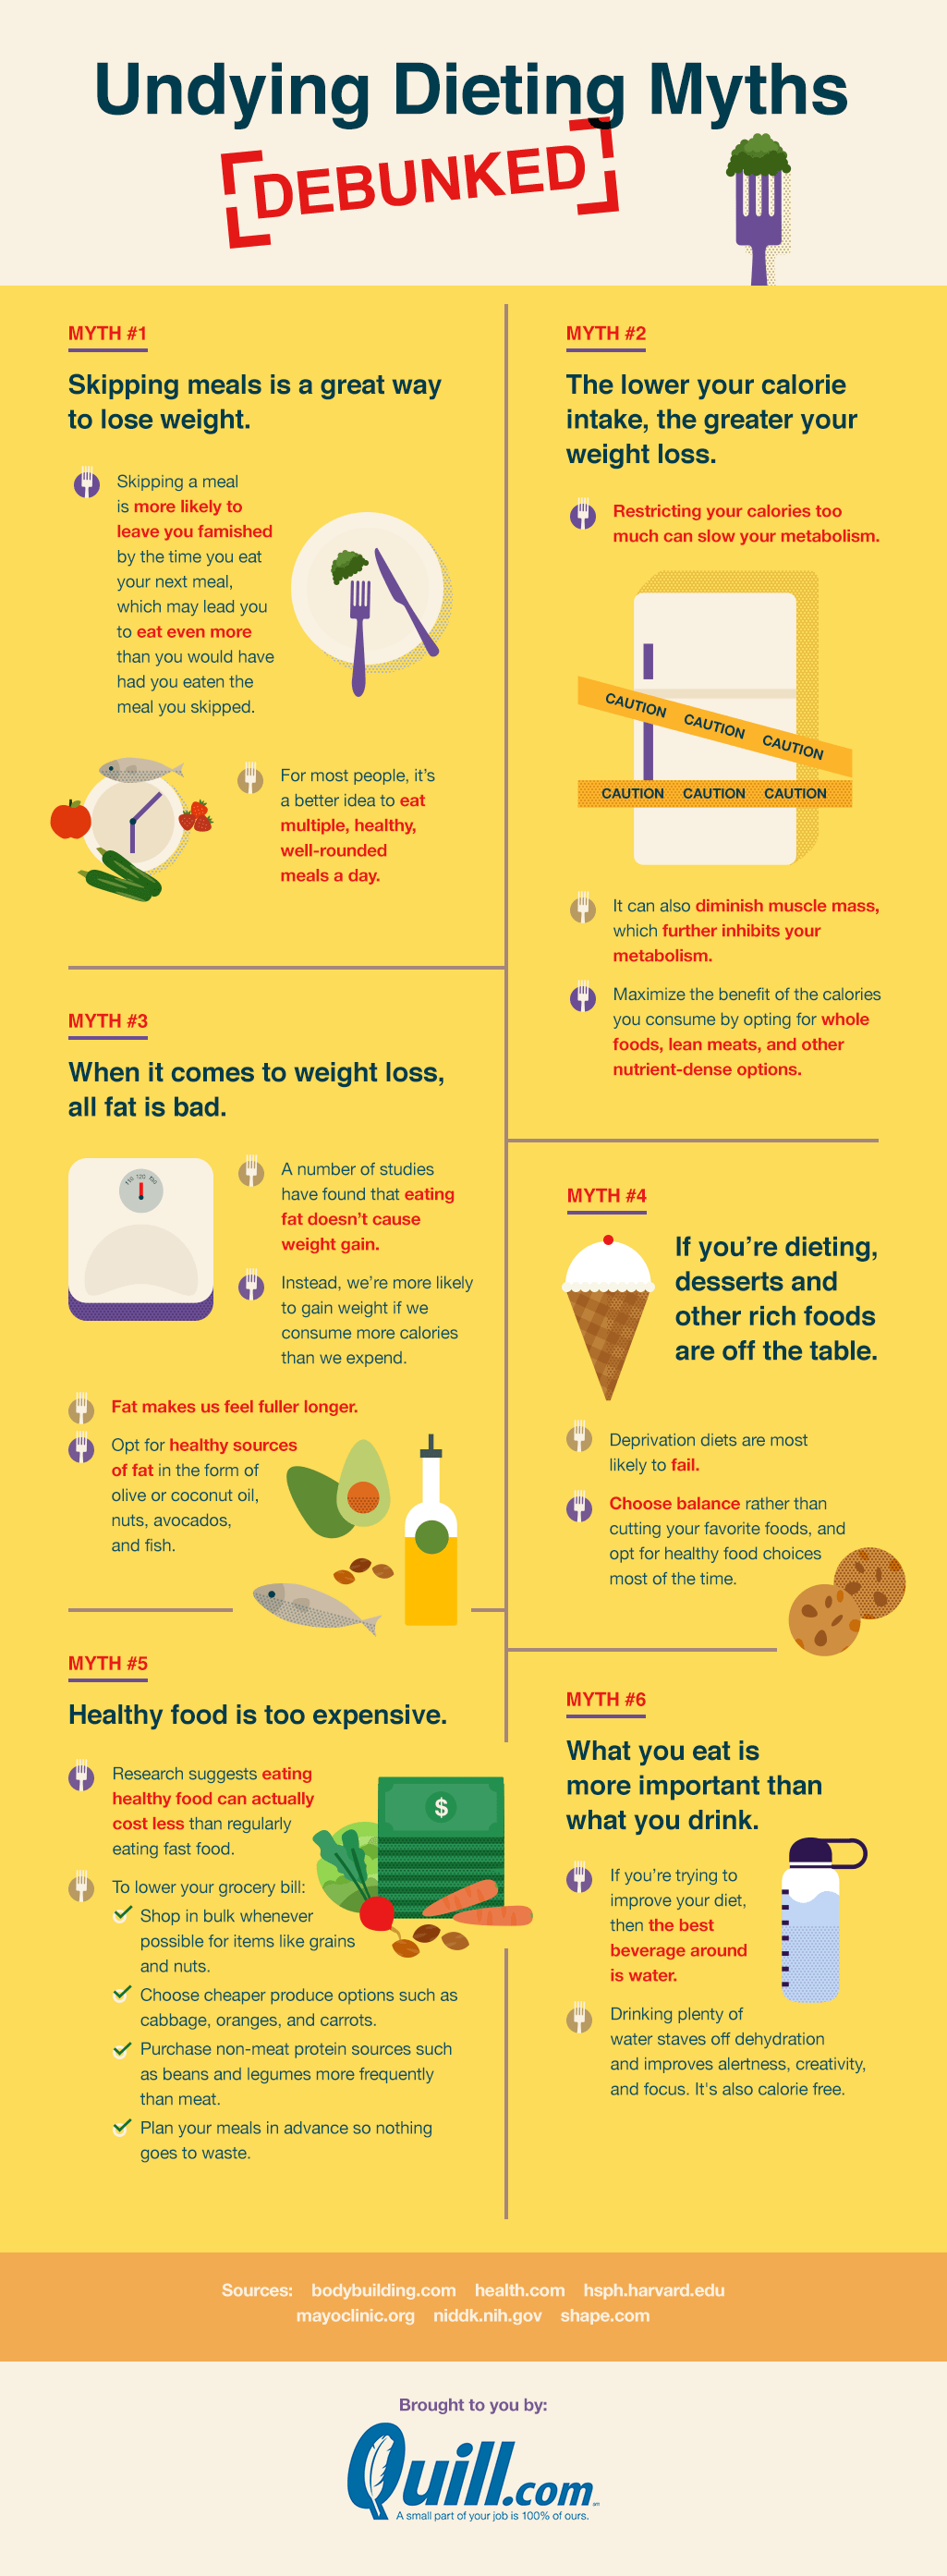 Undying-Dieting-Myths-Infographic-2a